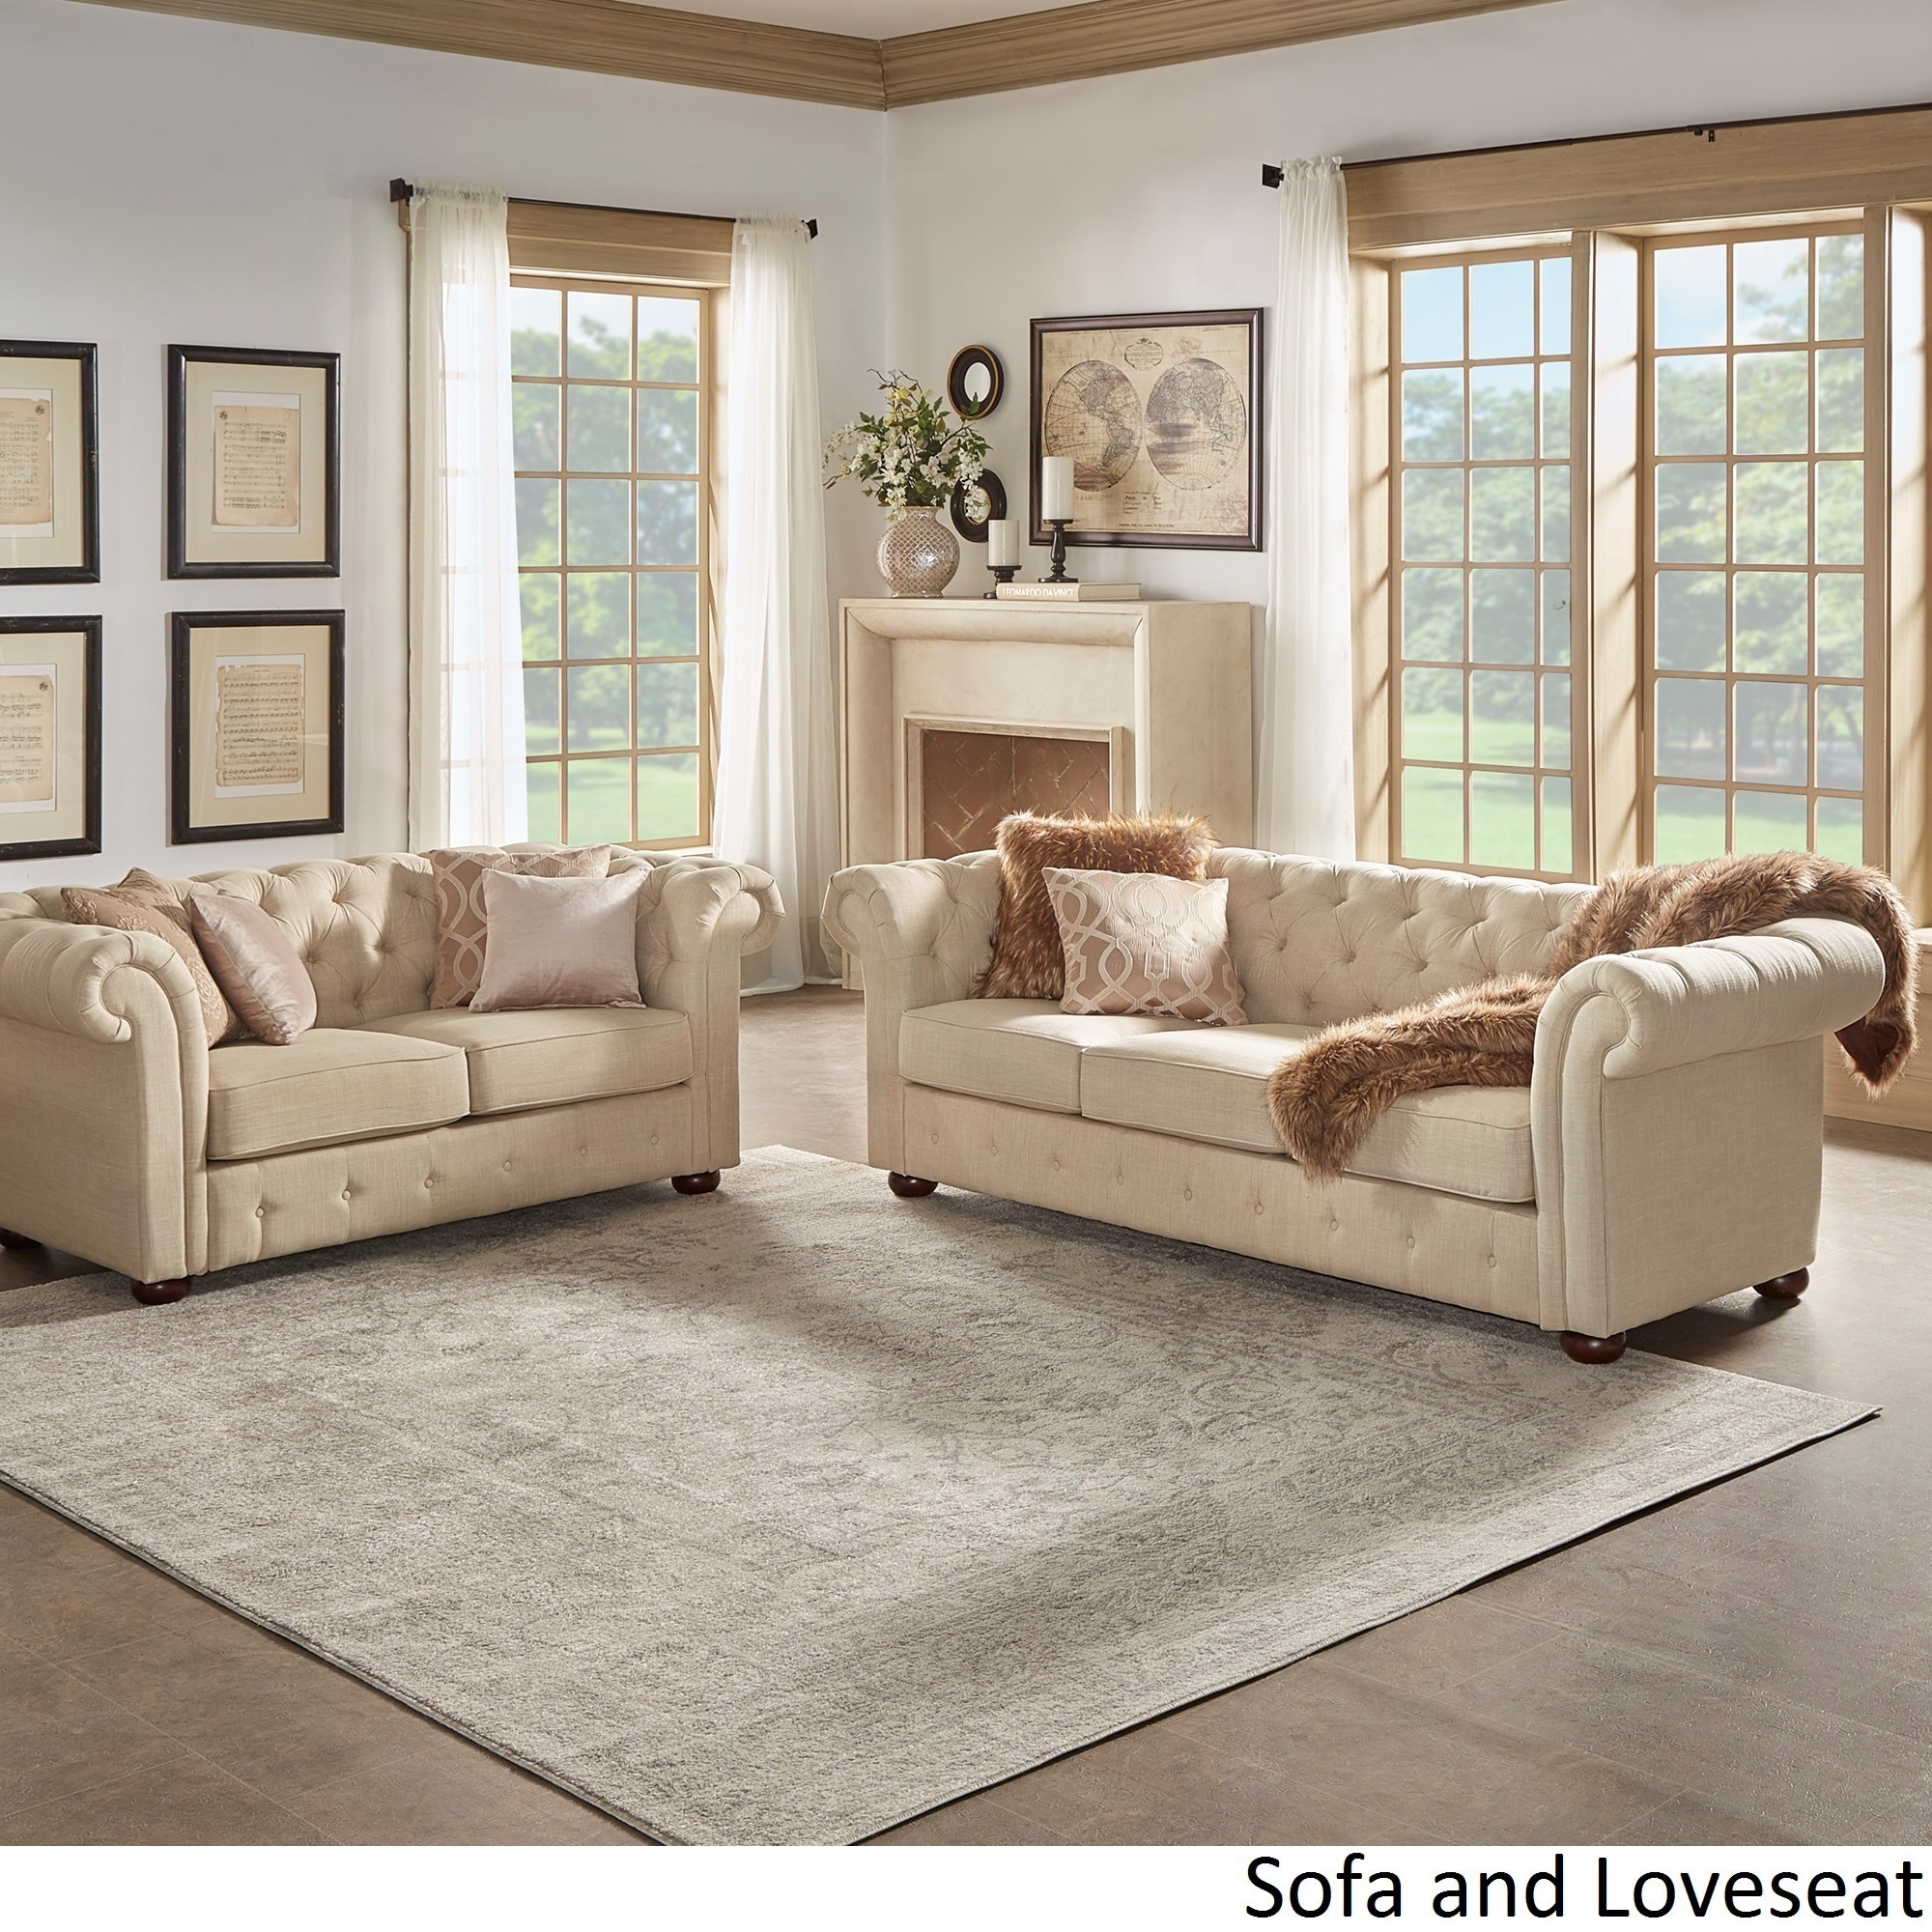 sofa loveseat chair set Design Decoration